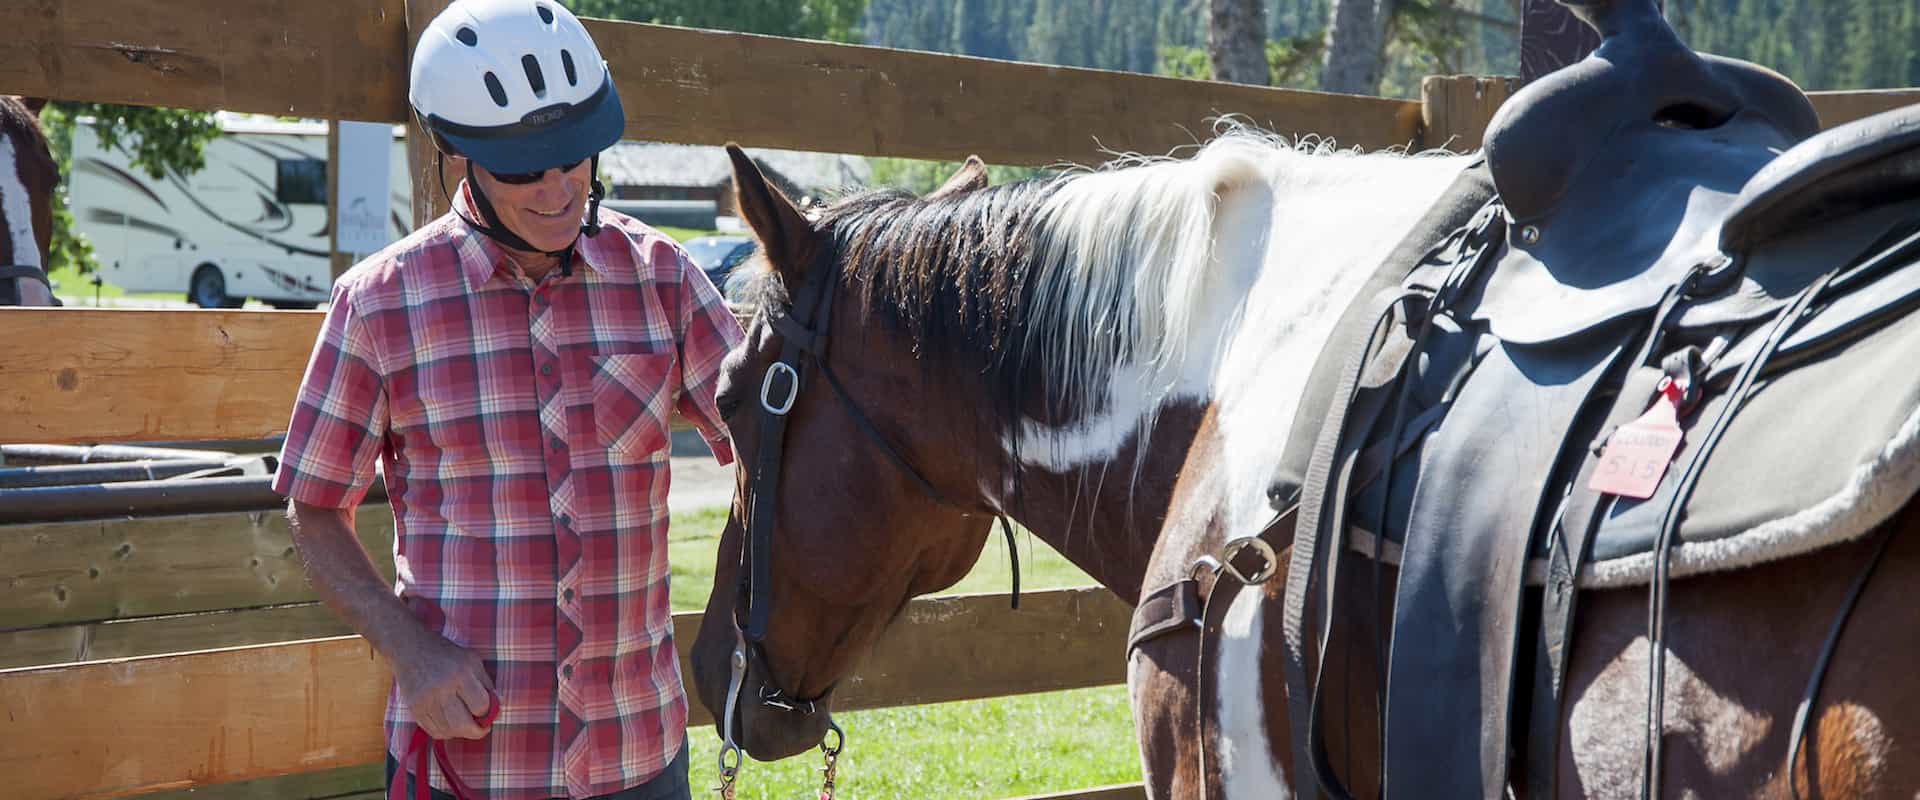 Meet your friendly horse before your horseback ride with Discover Banff Tours in the Canadian Rockies